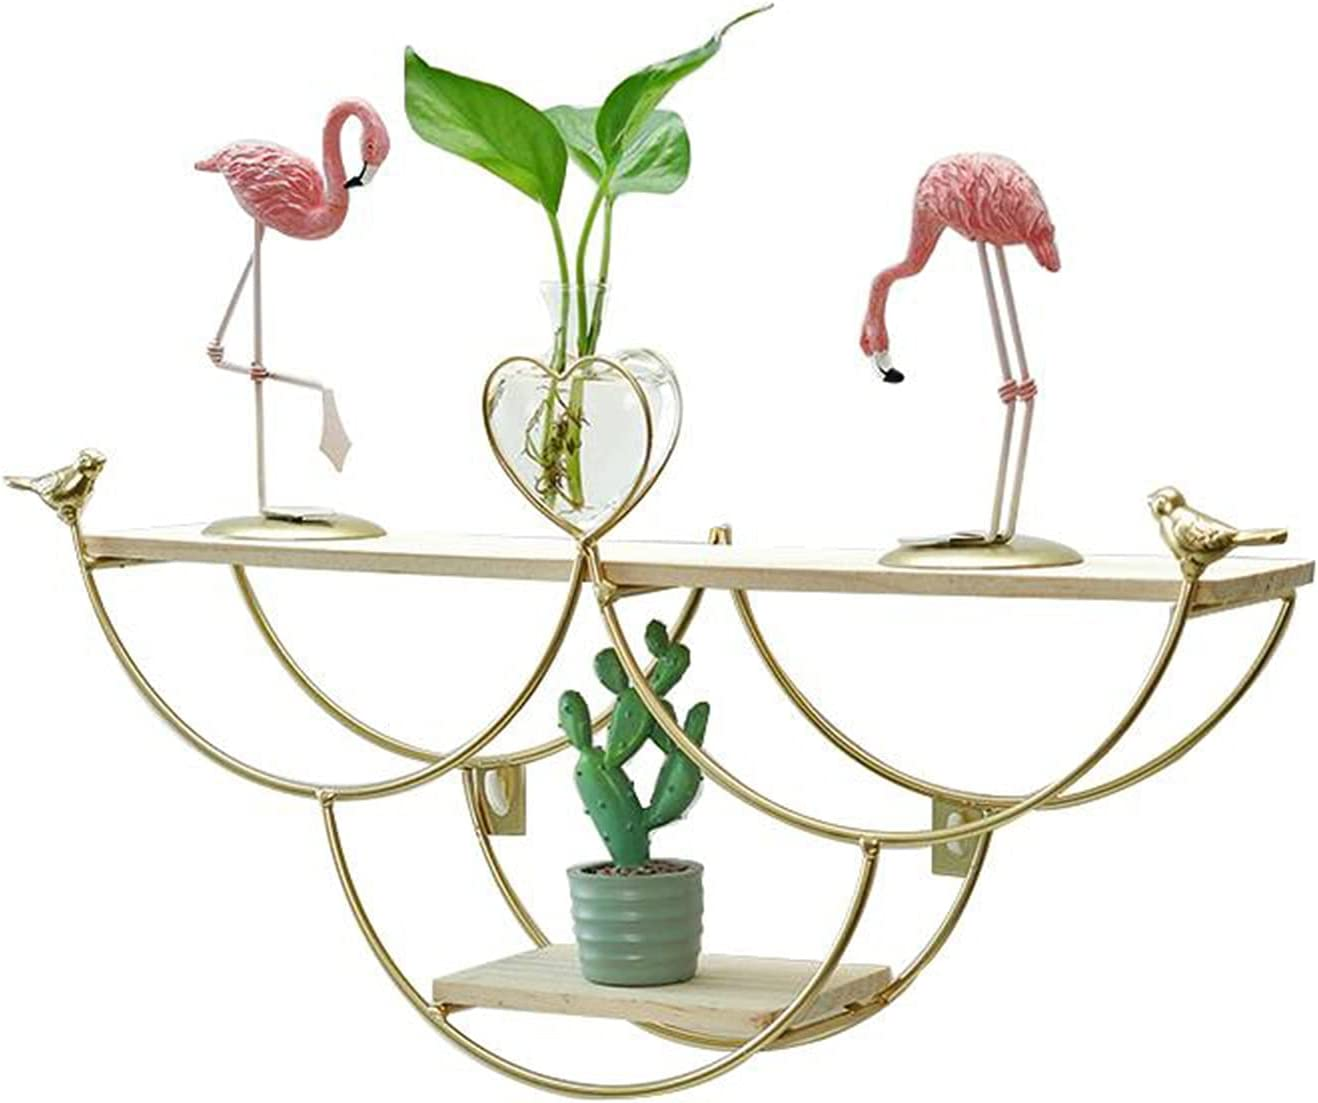 Shelves for Wall Decor Hanging Tucson Mall Mounted discount Floating She